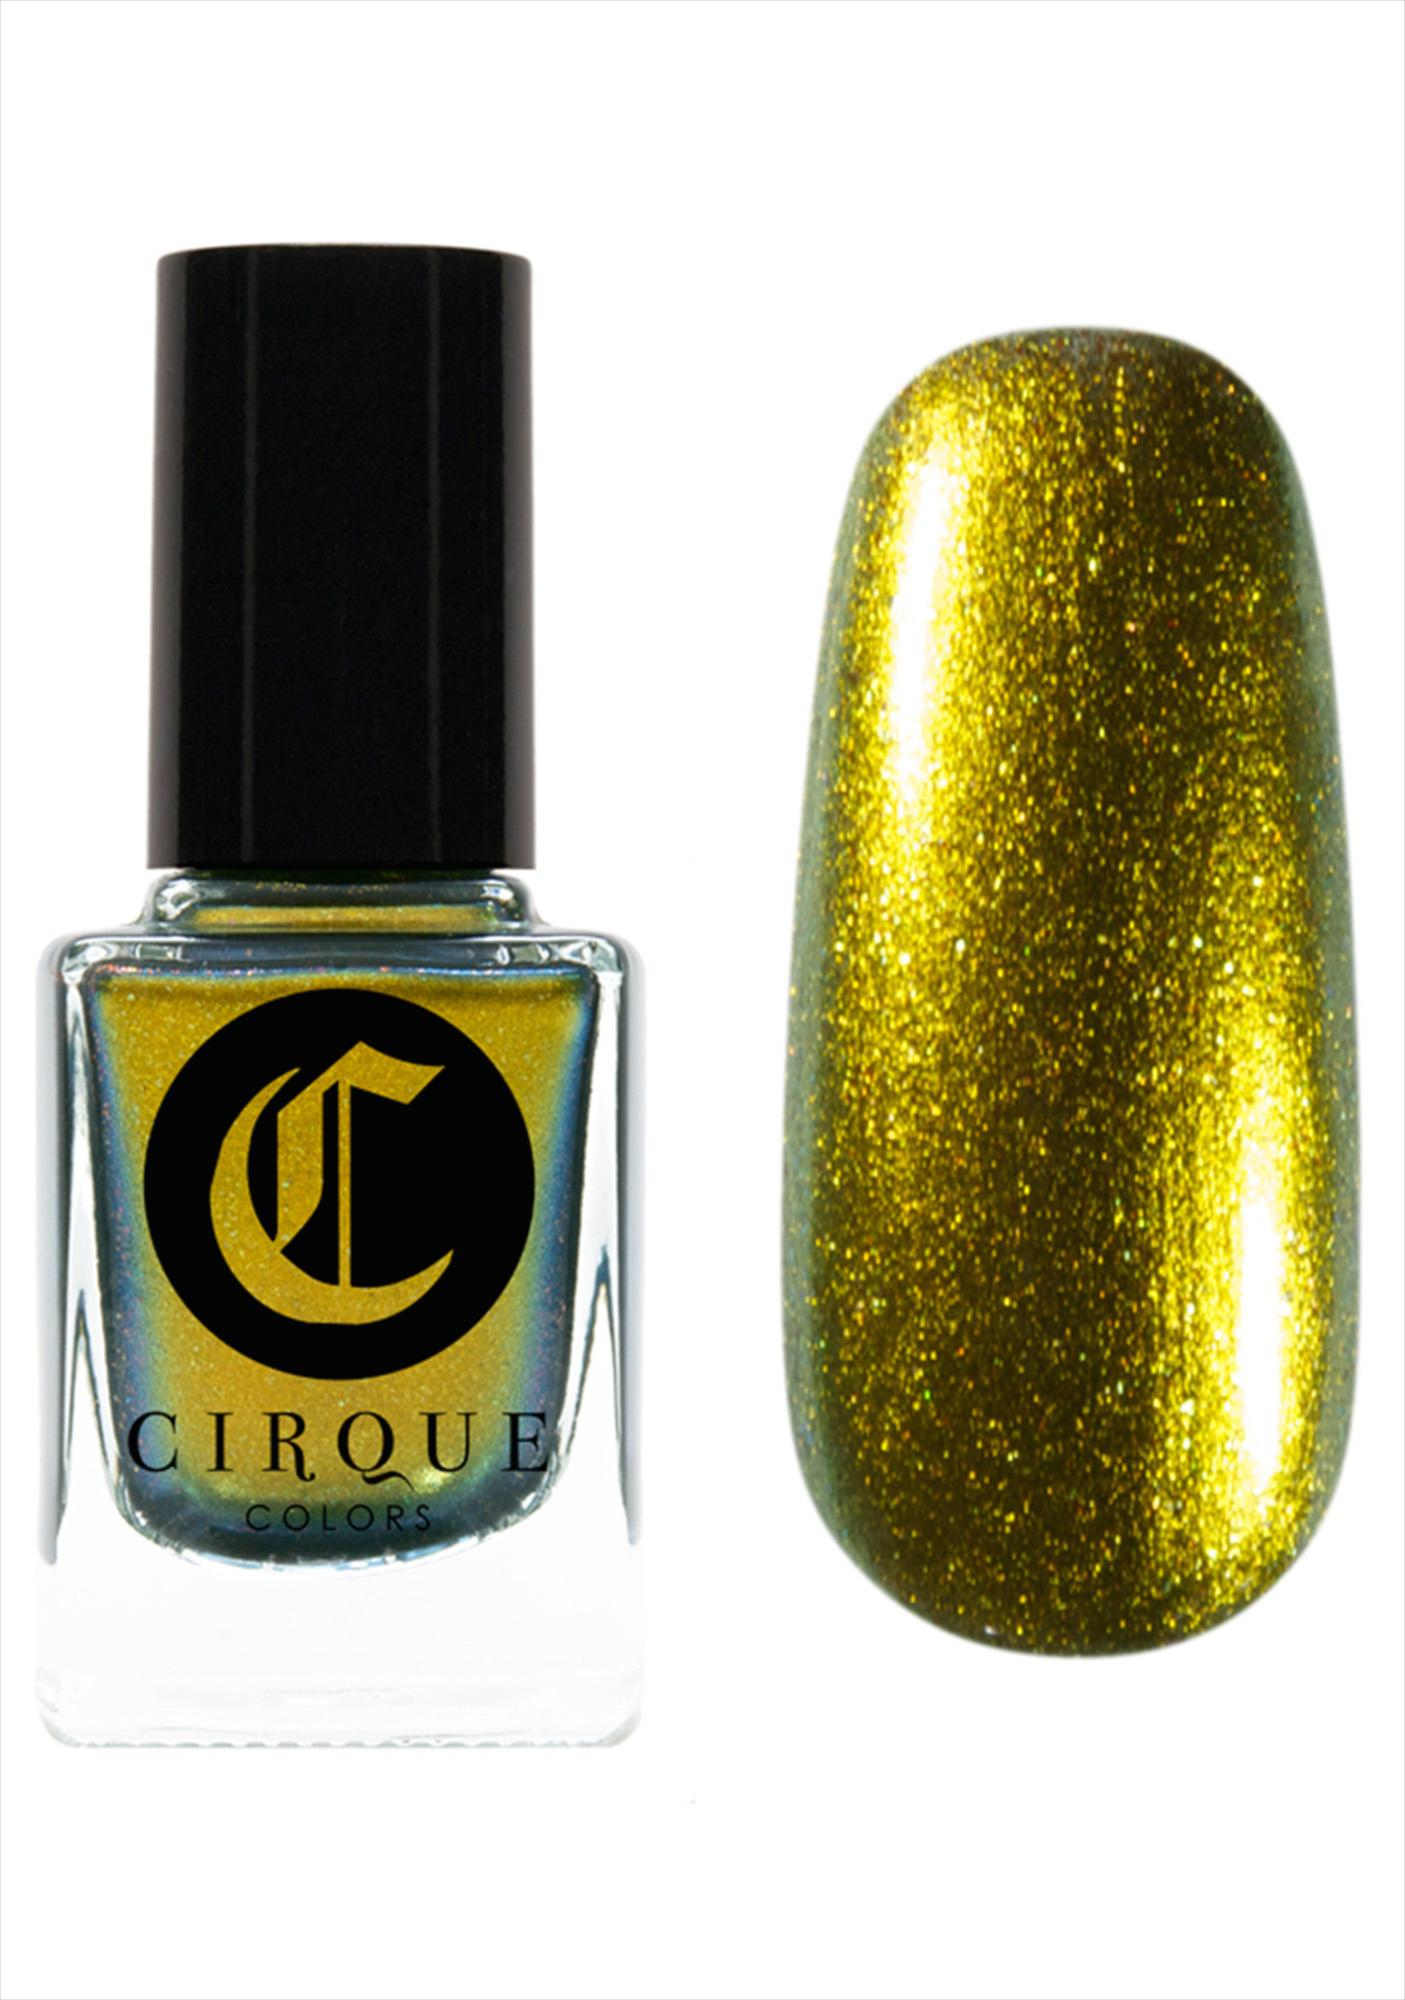 Cirque Colors Some Great Reward Nail Polish